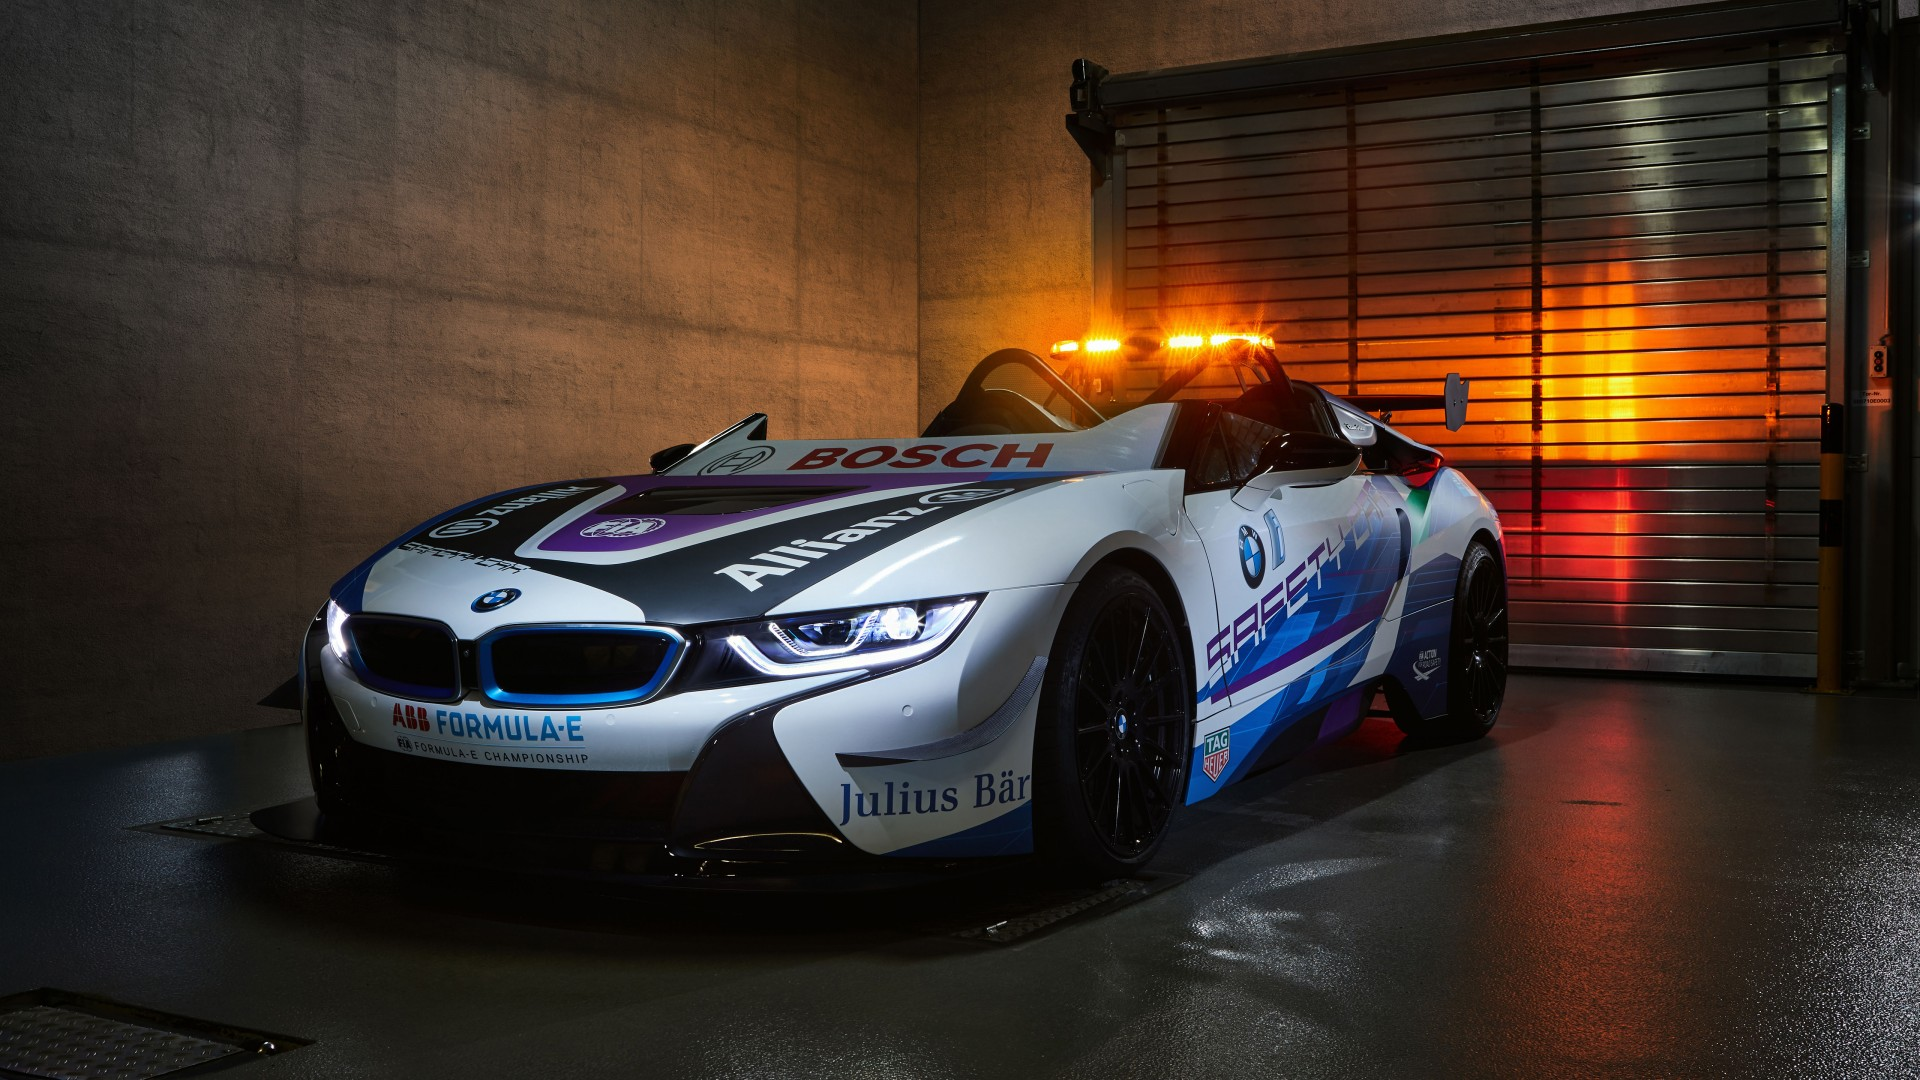 bmw  roadster formula  safety car   wallpaper hd car wallpapers id